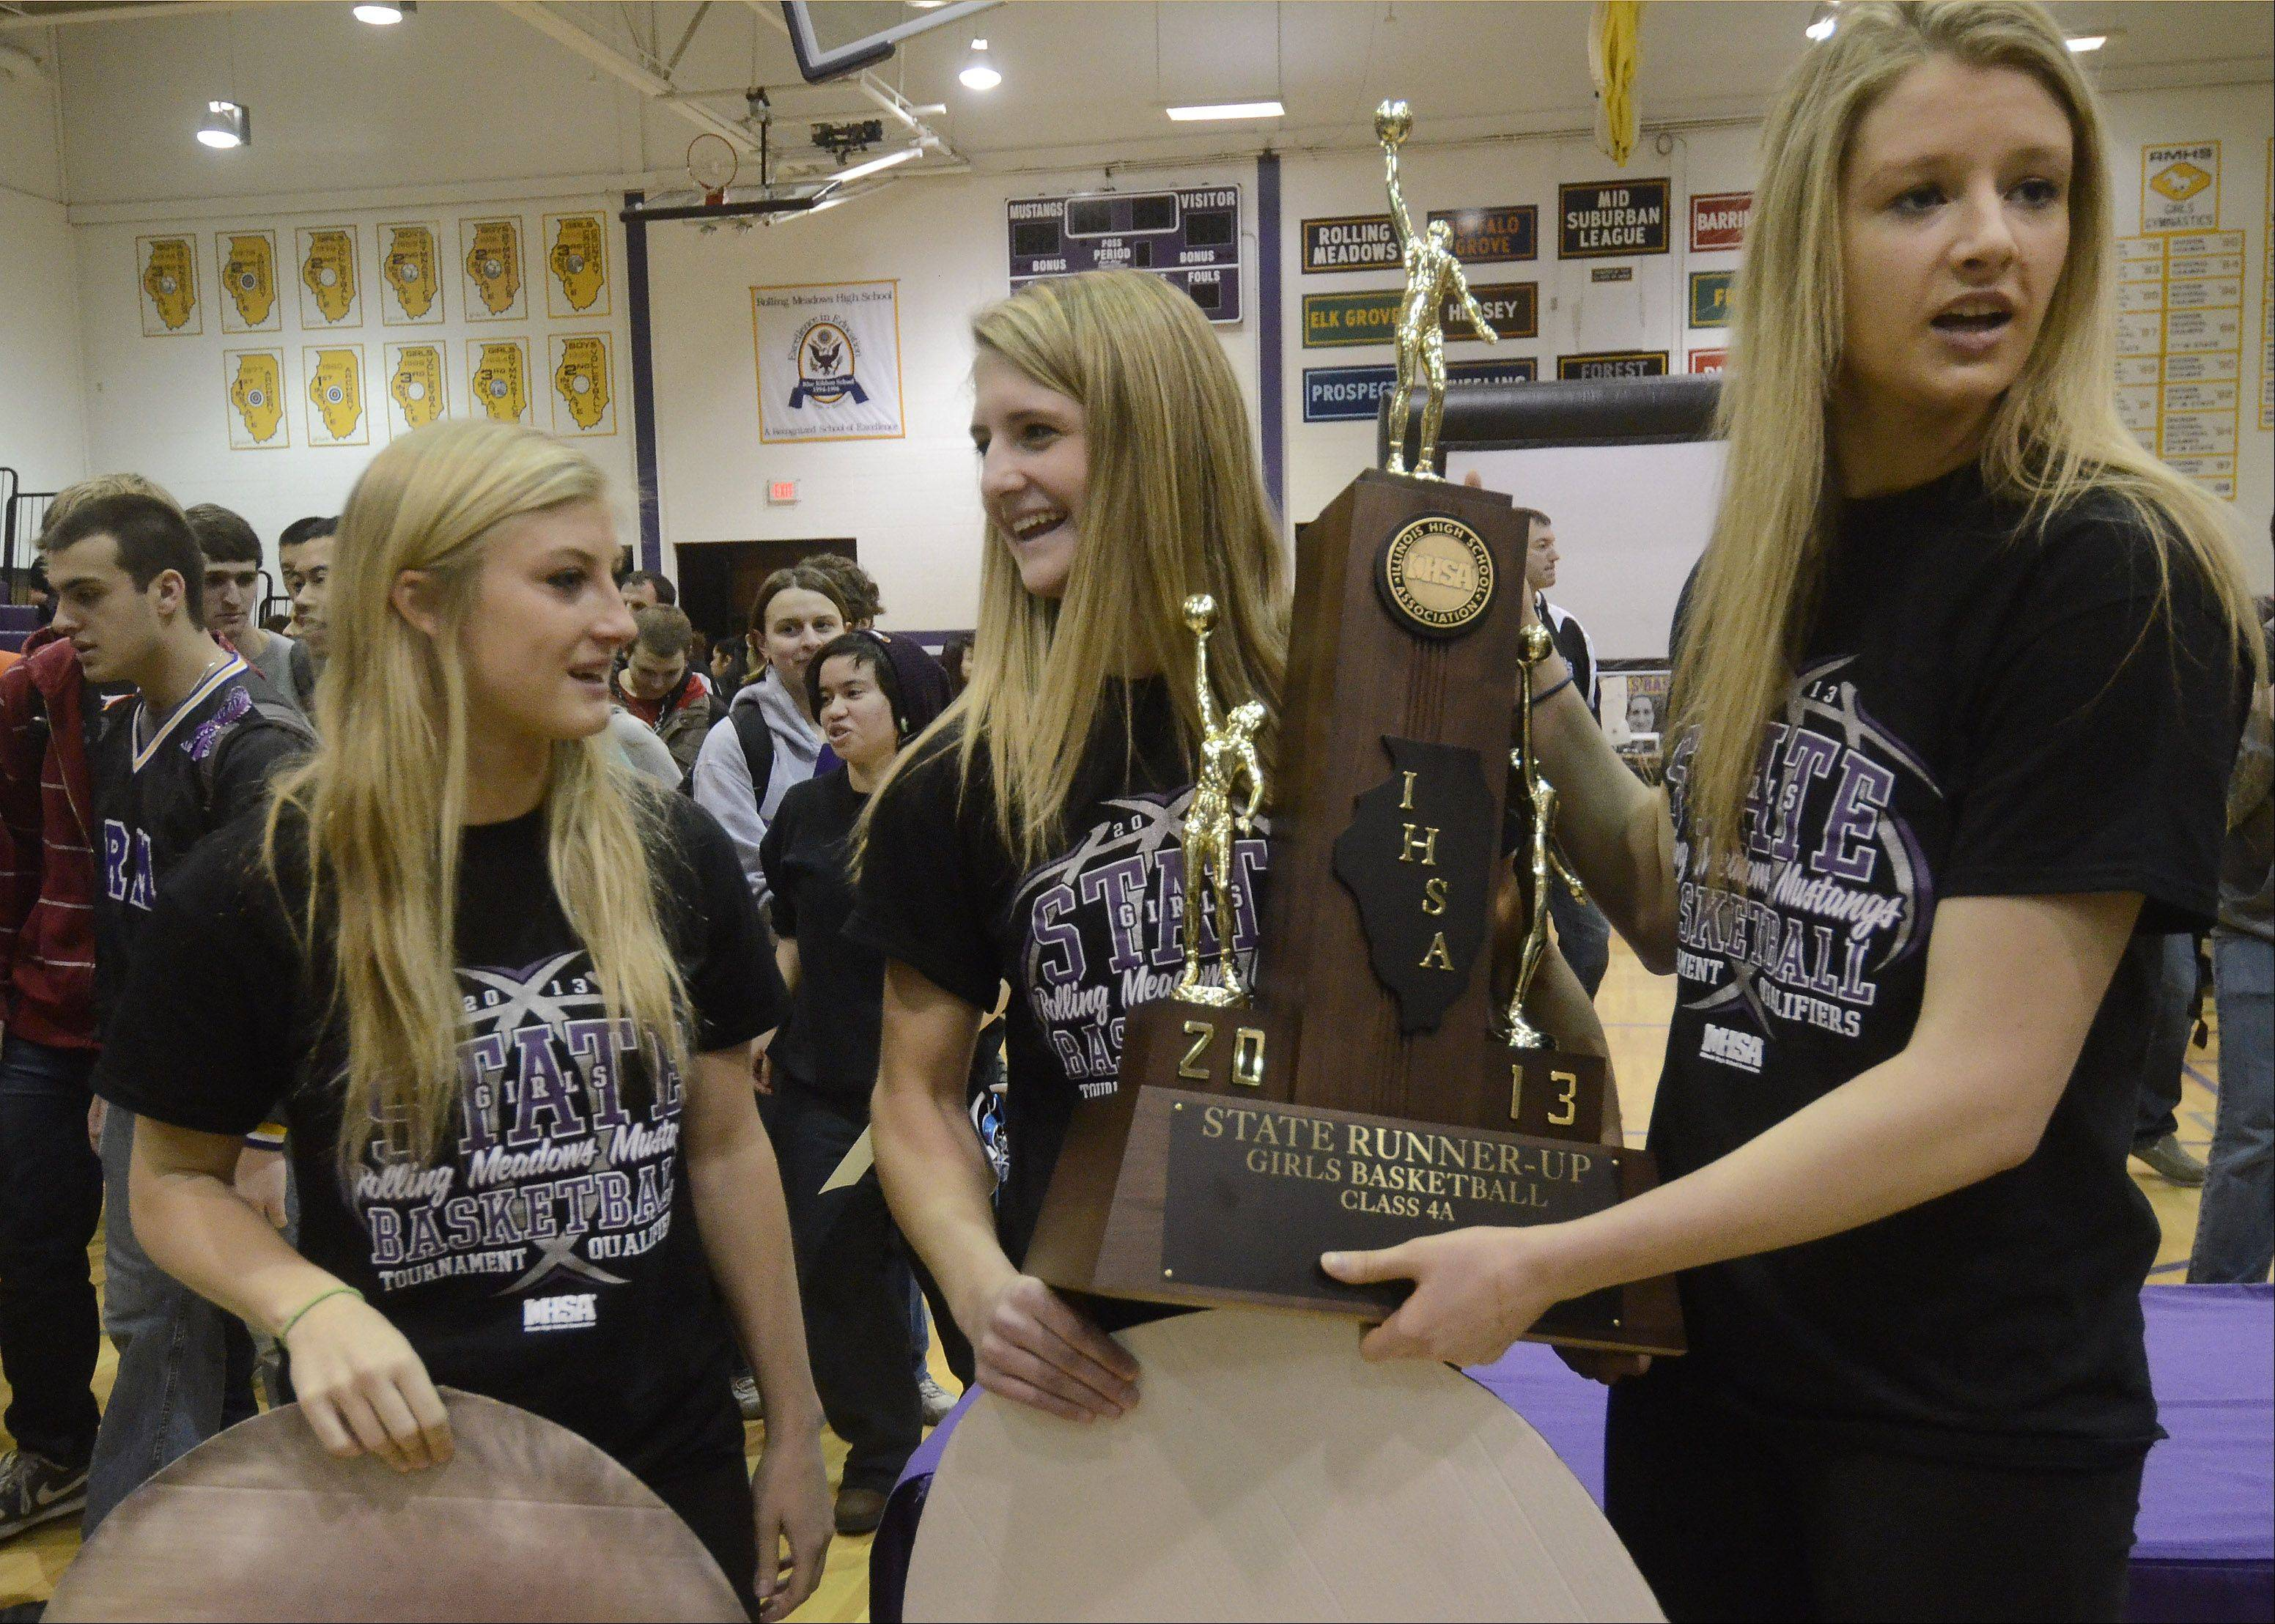 Rolling Meadows High School girls basketball captains Jackie Kemph, Alexis Glasgow and Jenny Vliet hold the Class 4A runner up trophy during a school celebration for the team Monday morning. The team is returning nearly all of its players next year, giving hope for another run for the state title.